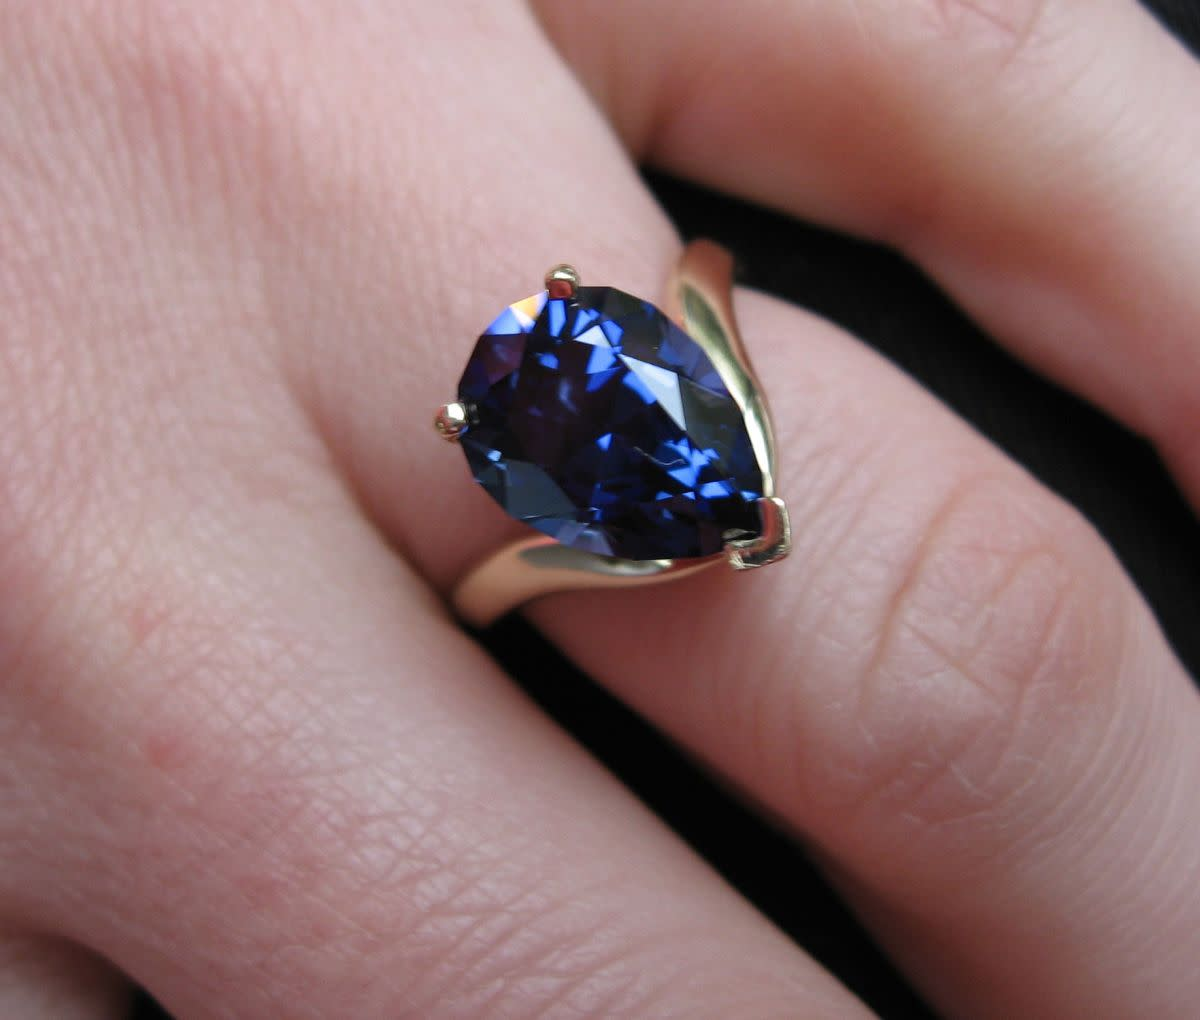 Sapphire can bring a helpful boost of self-expression.